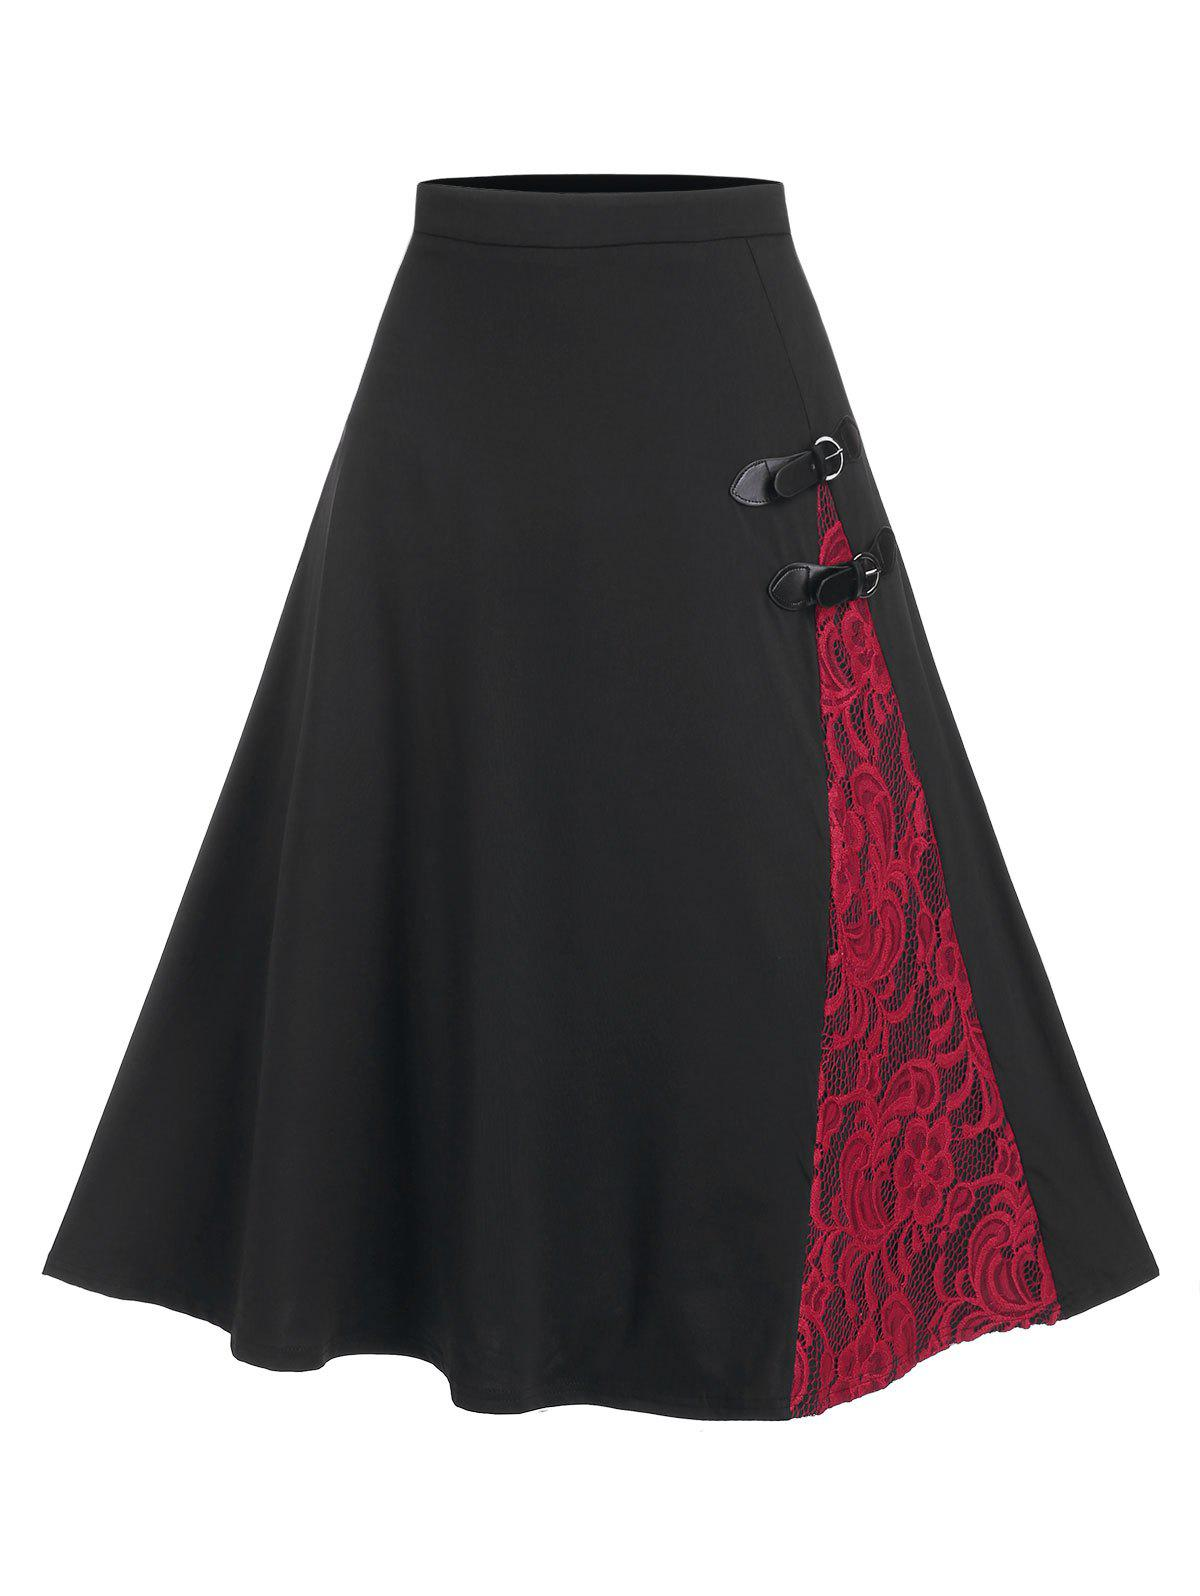 Lace Panel Buckled A Line Skirt - BLACK L